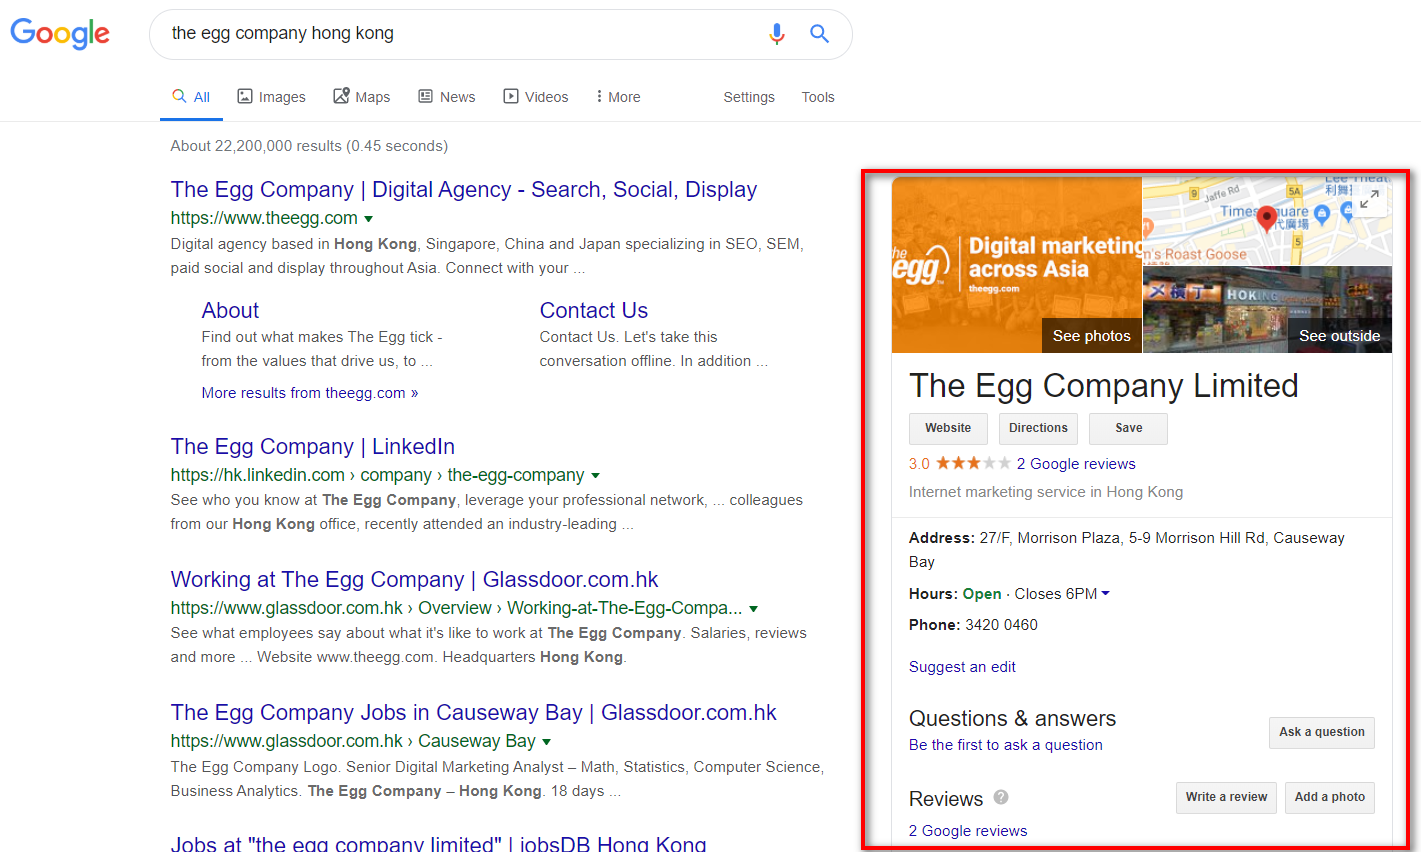 Google My Business Listing on the Knowledge Panel